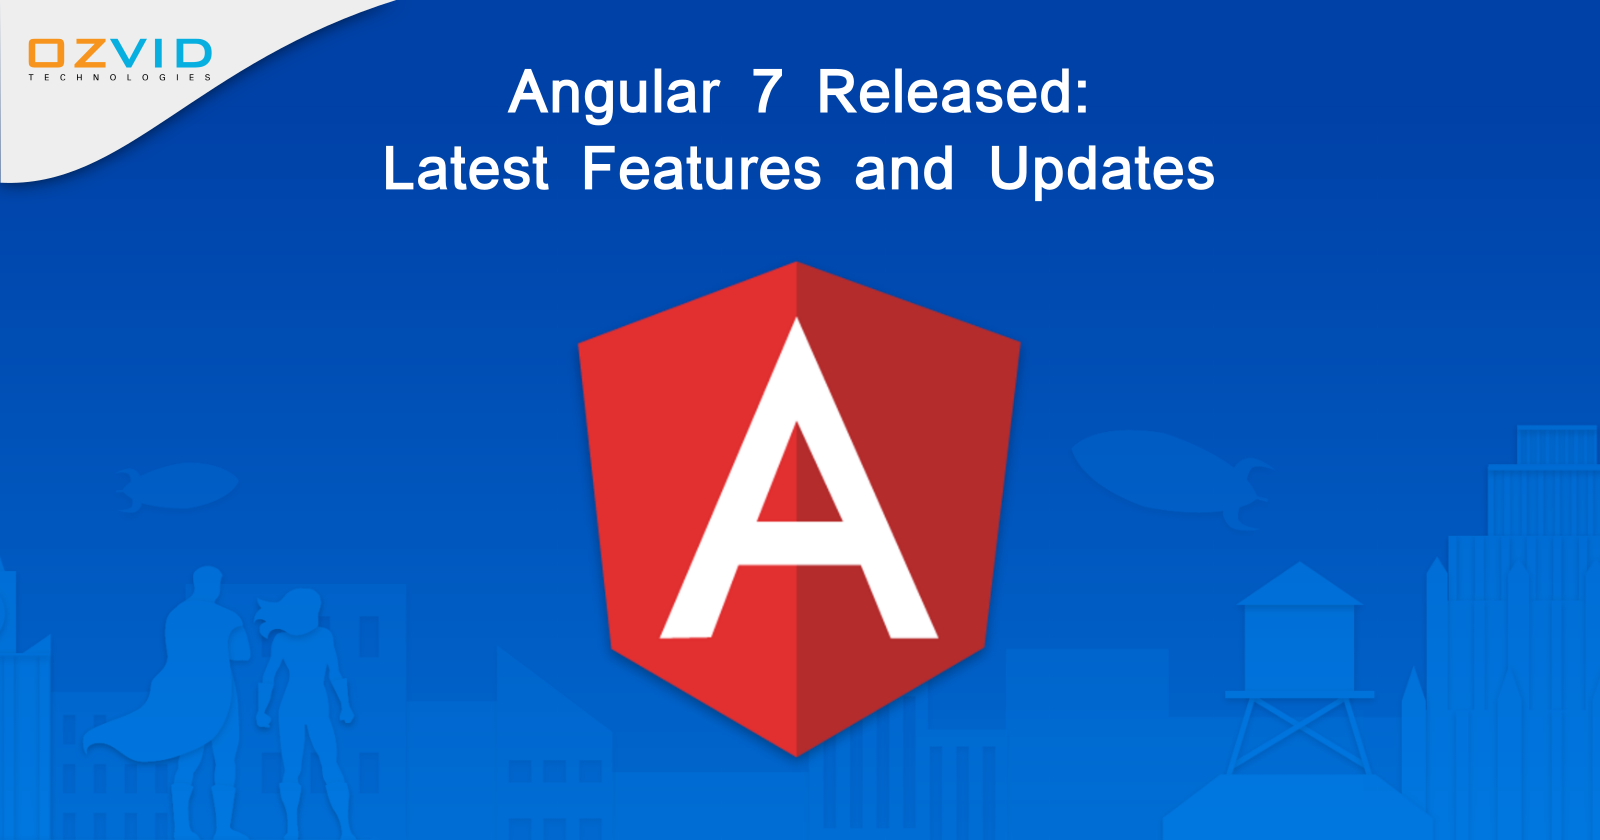 Angular 7 Released: Latest Features and Updates